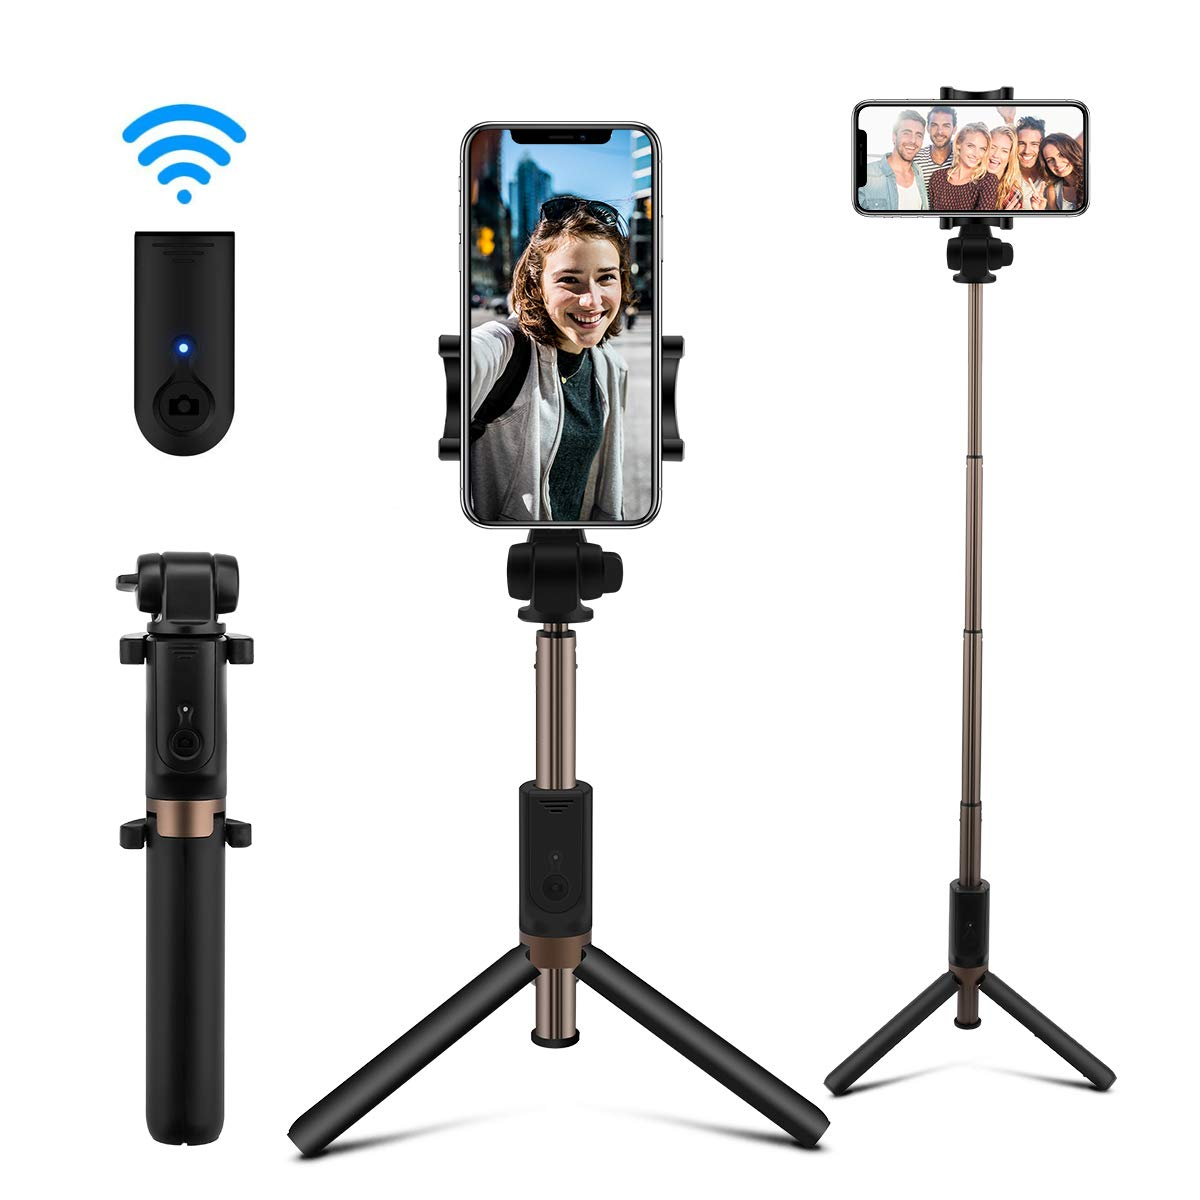 AFAITH Selfie Stick Bluetooth, Extendable Selfie Stick Tripod Stand with Wireless Remote Shutter Compatible with iPhone Xs/XS max/X/8/8P/7/7P/6s/6, Galaxy S9/S9 Plus/S8/S7/S6/S5/Note 9/8